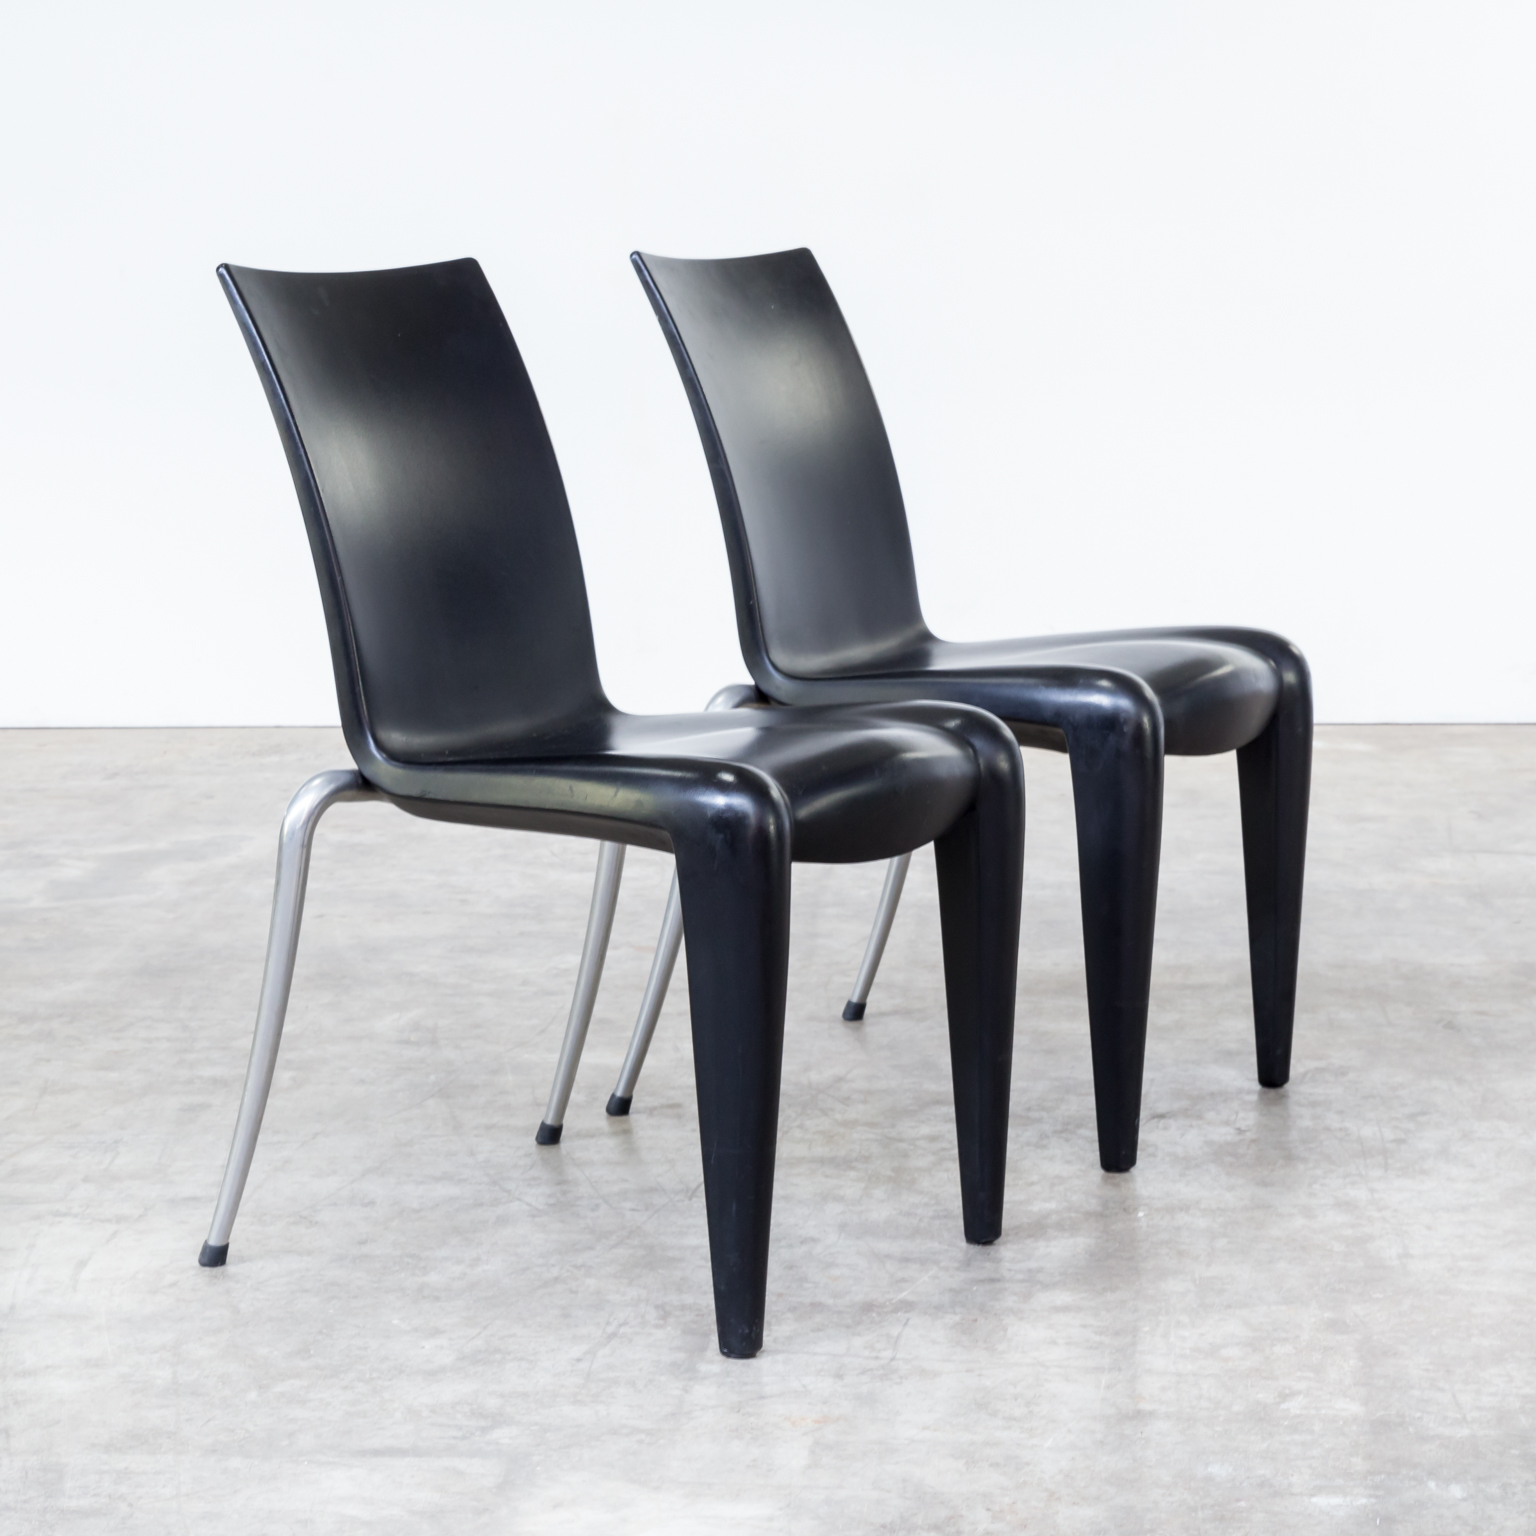 90s philippe starck louis 20 chairs for vitra set 4 barbmama. Black Bedroom Furniture Sets. Home Design Ideas